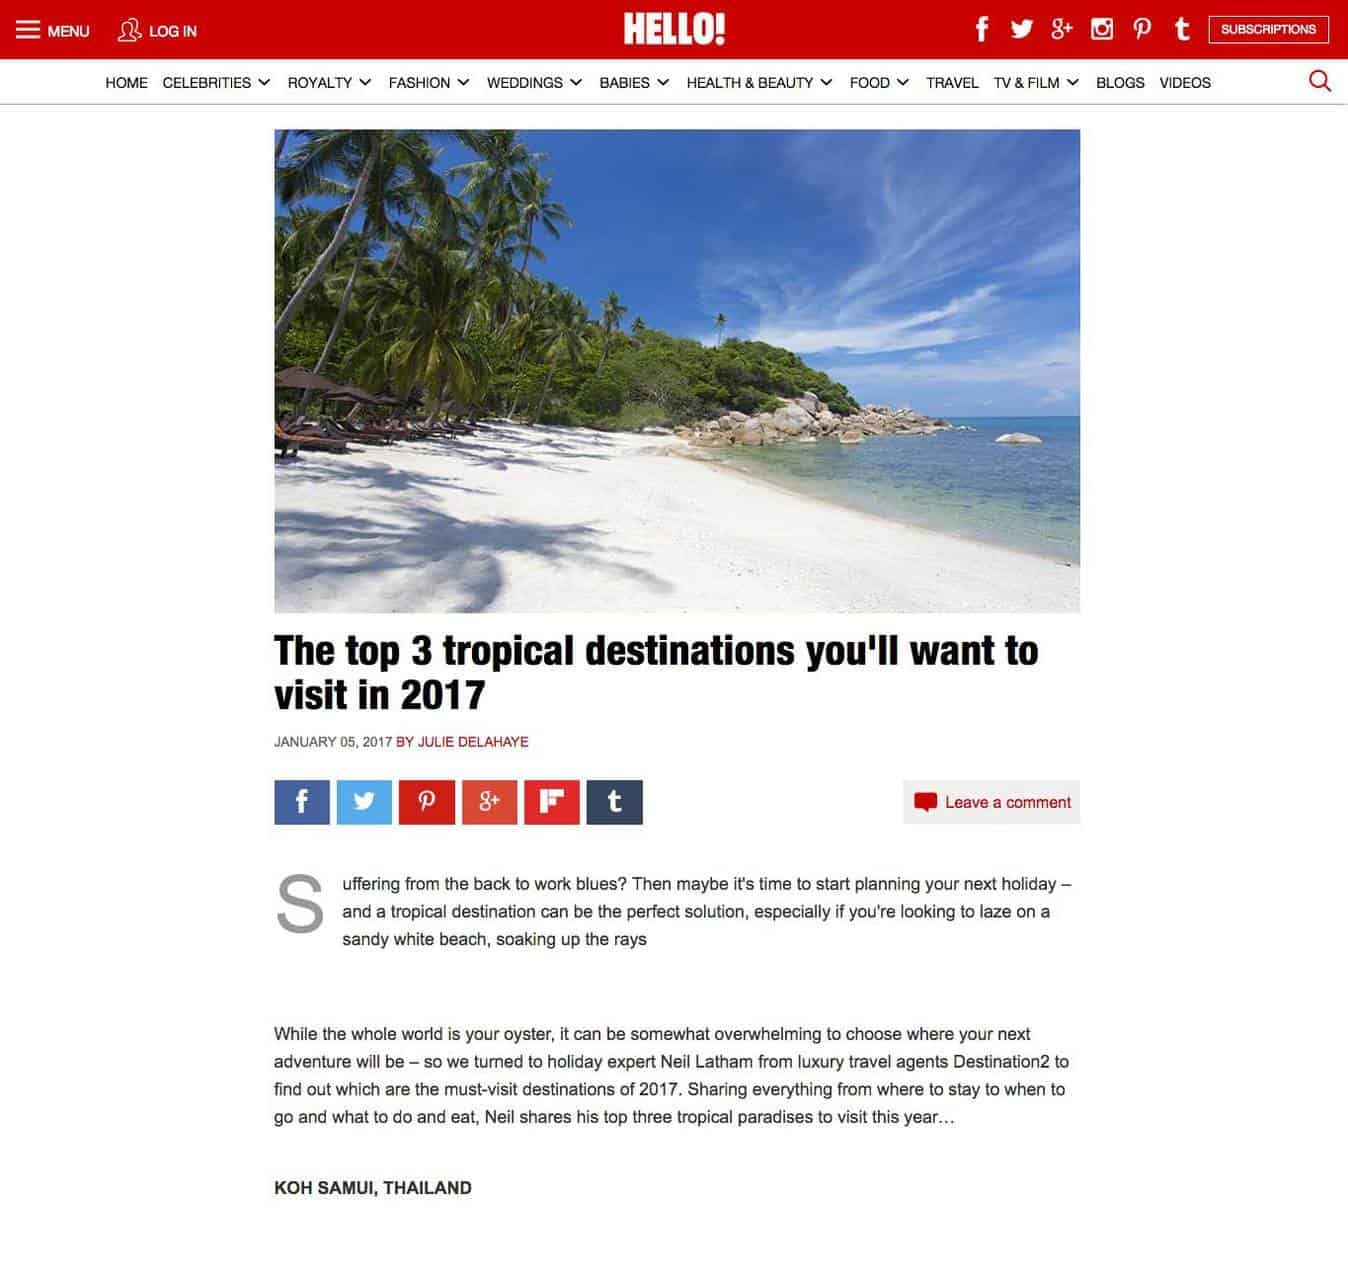 The top 3 tropical destinations you'll want to visit in 2017